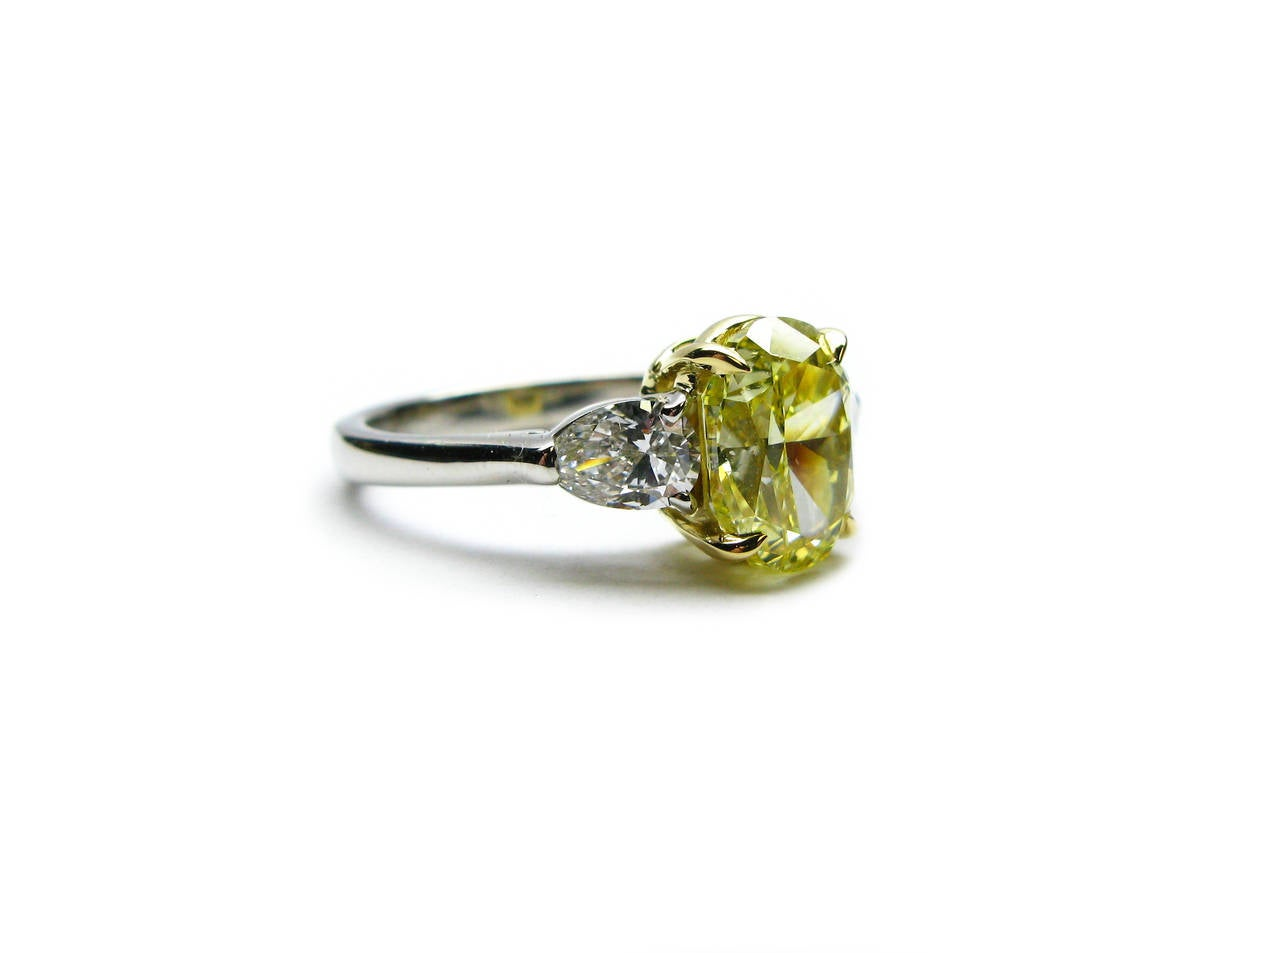 2 50 Carat Fancy Intense Yellow Oval Diamond Ring at 1stdibs